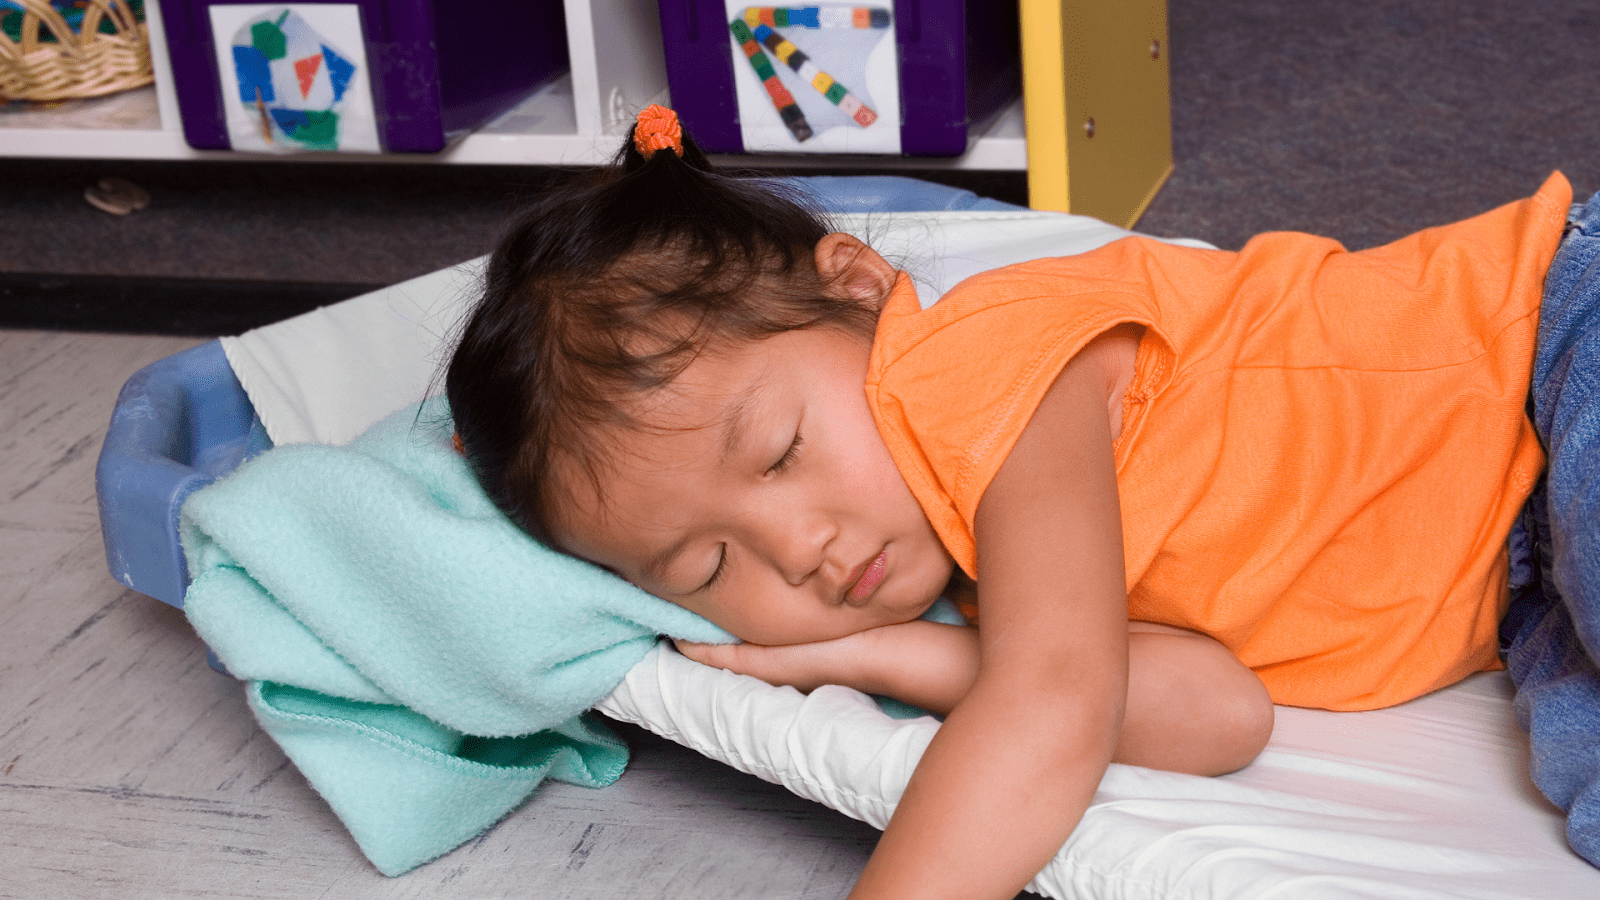 Make your childcare sleep and rest routines less stressful